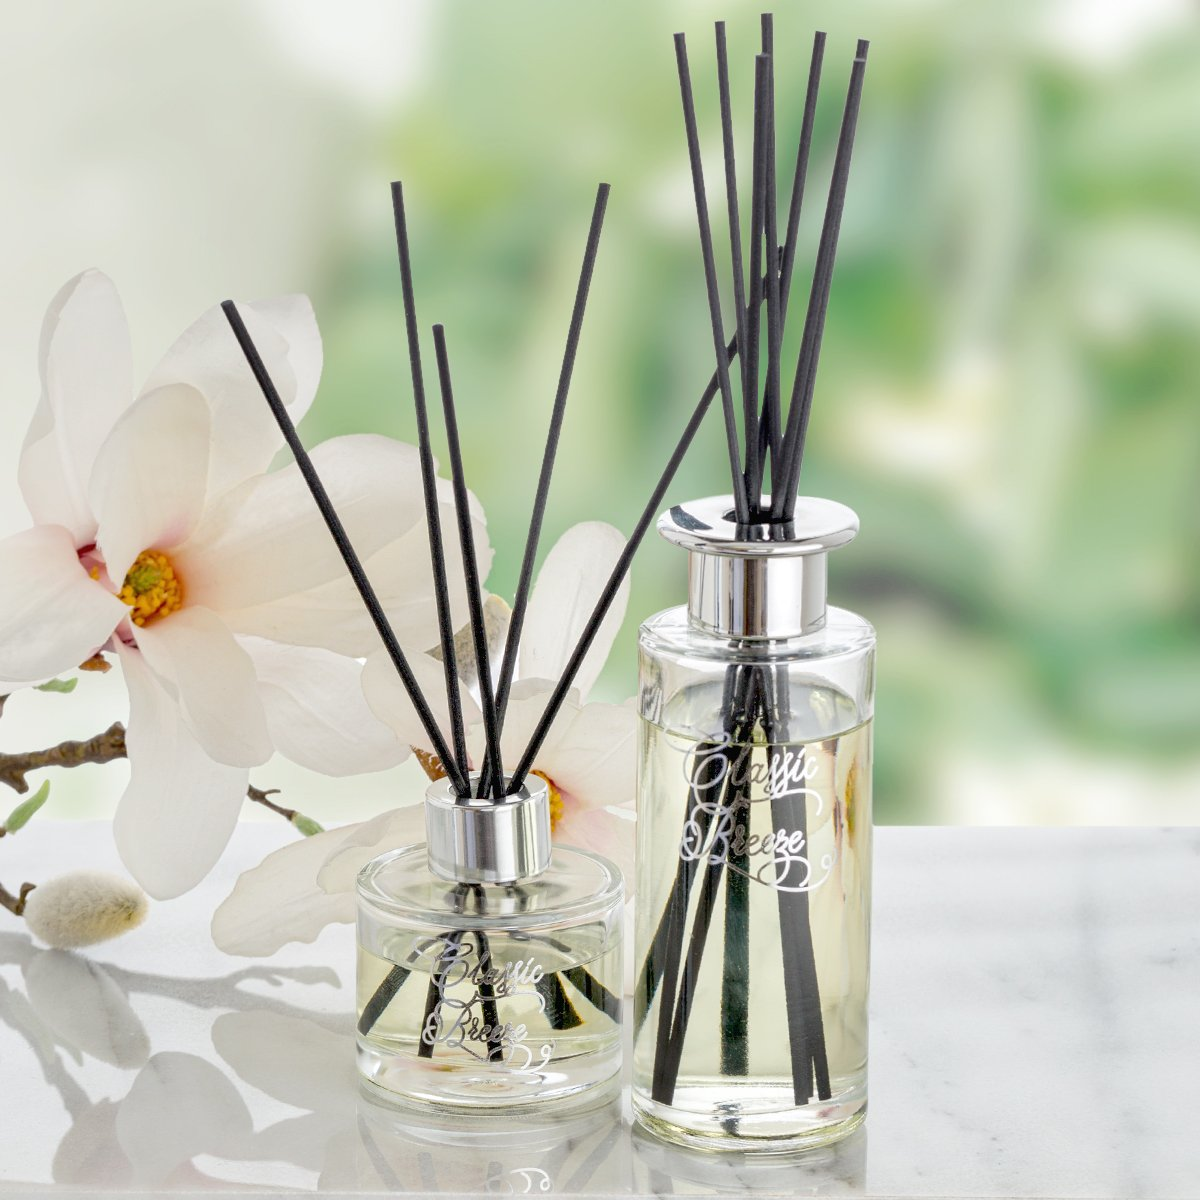 Creative Scents Classic Breeze Essential Oil Reed Diffuser Sticks in Gift Box, Aromatherapy-Grade Oils Blend, Natural Scented Diffusing Kit, Non-Toxic Home Spa Fragrance Diffuser Set, 150 ML/5 Oz. by Creative Scents (Image #3)